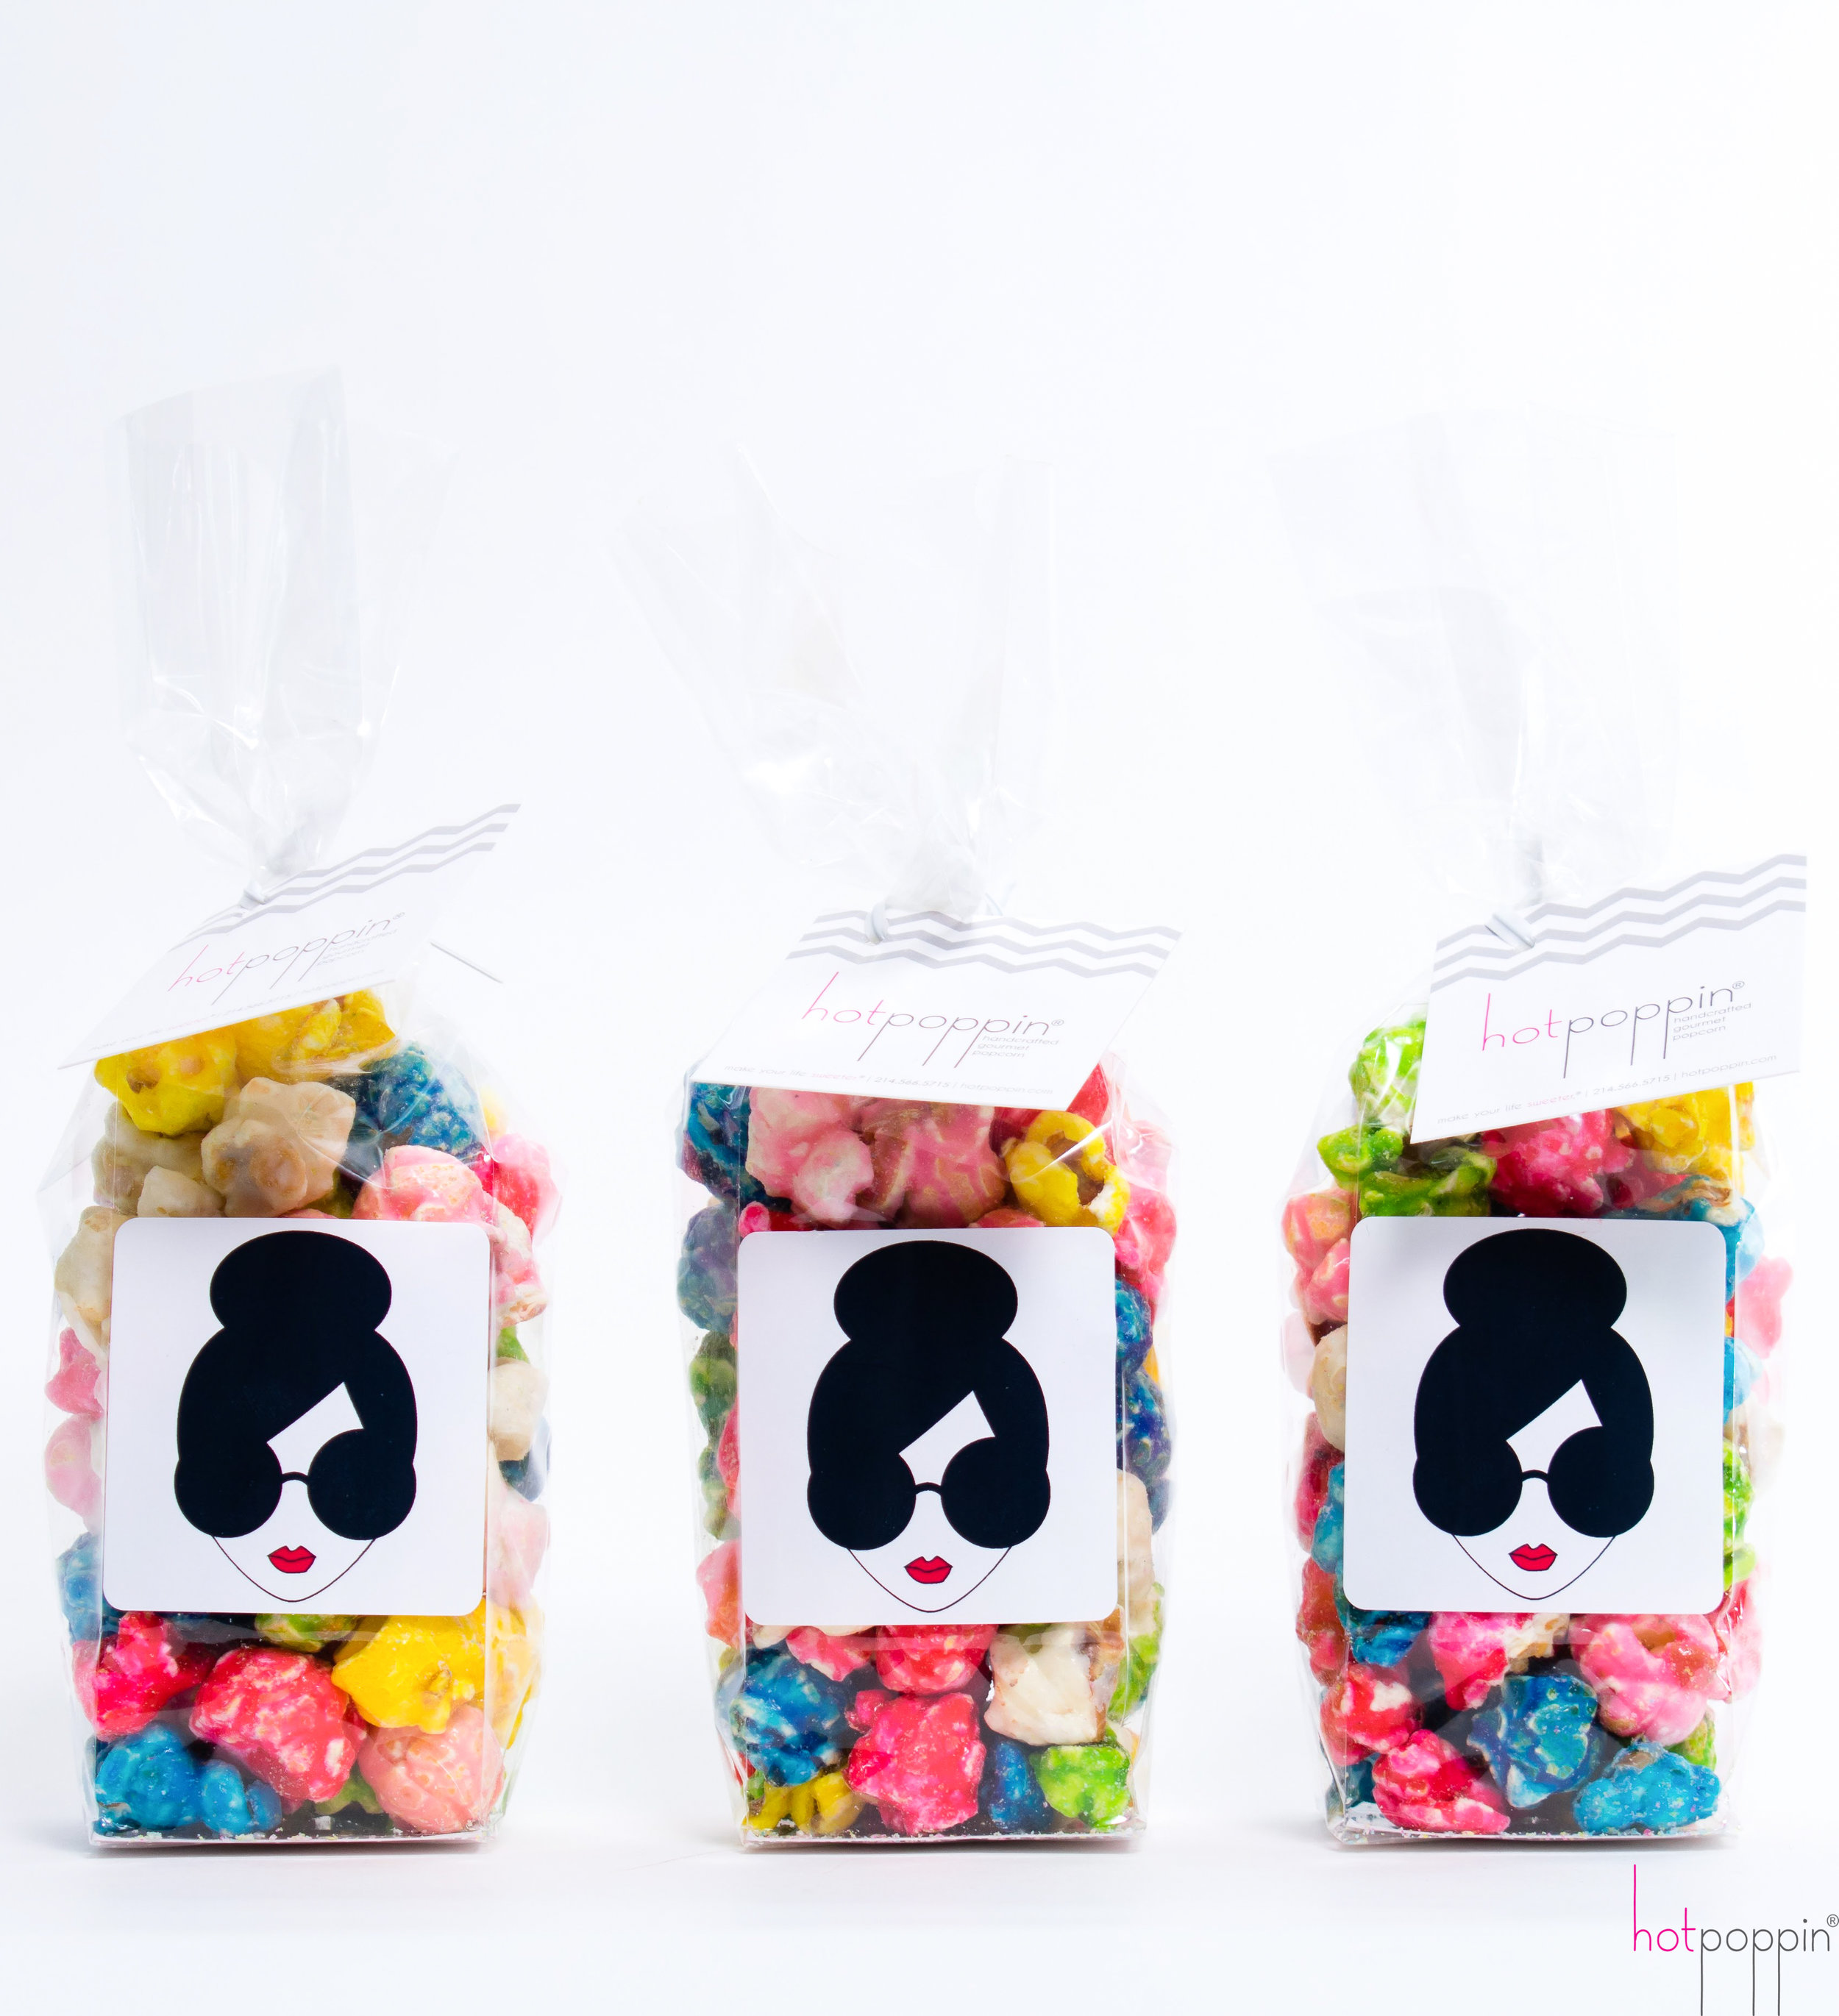 HotPoppin Handcrafted Gourmet Popcorn - Customized Alice and Olivia Bags